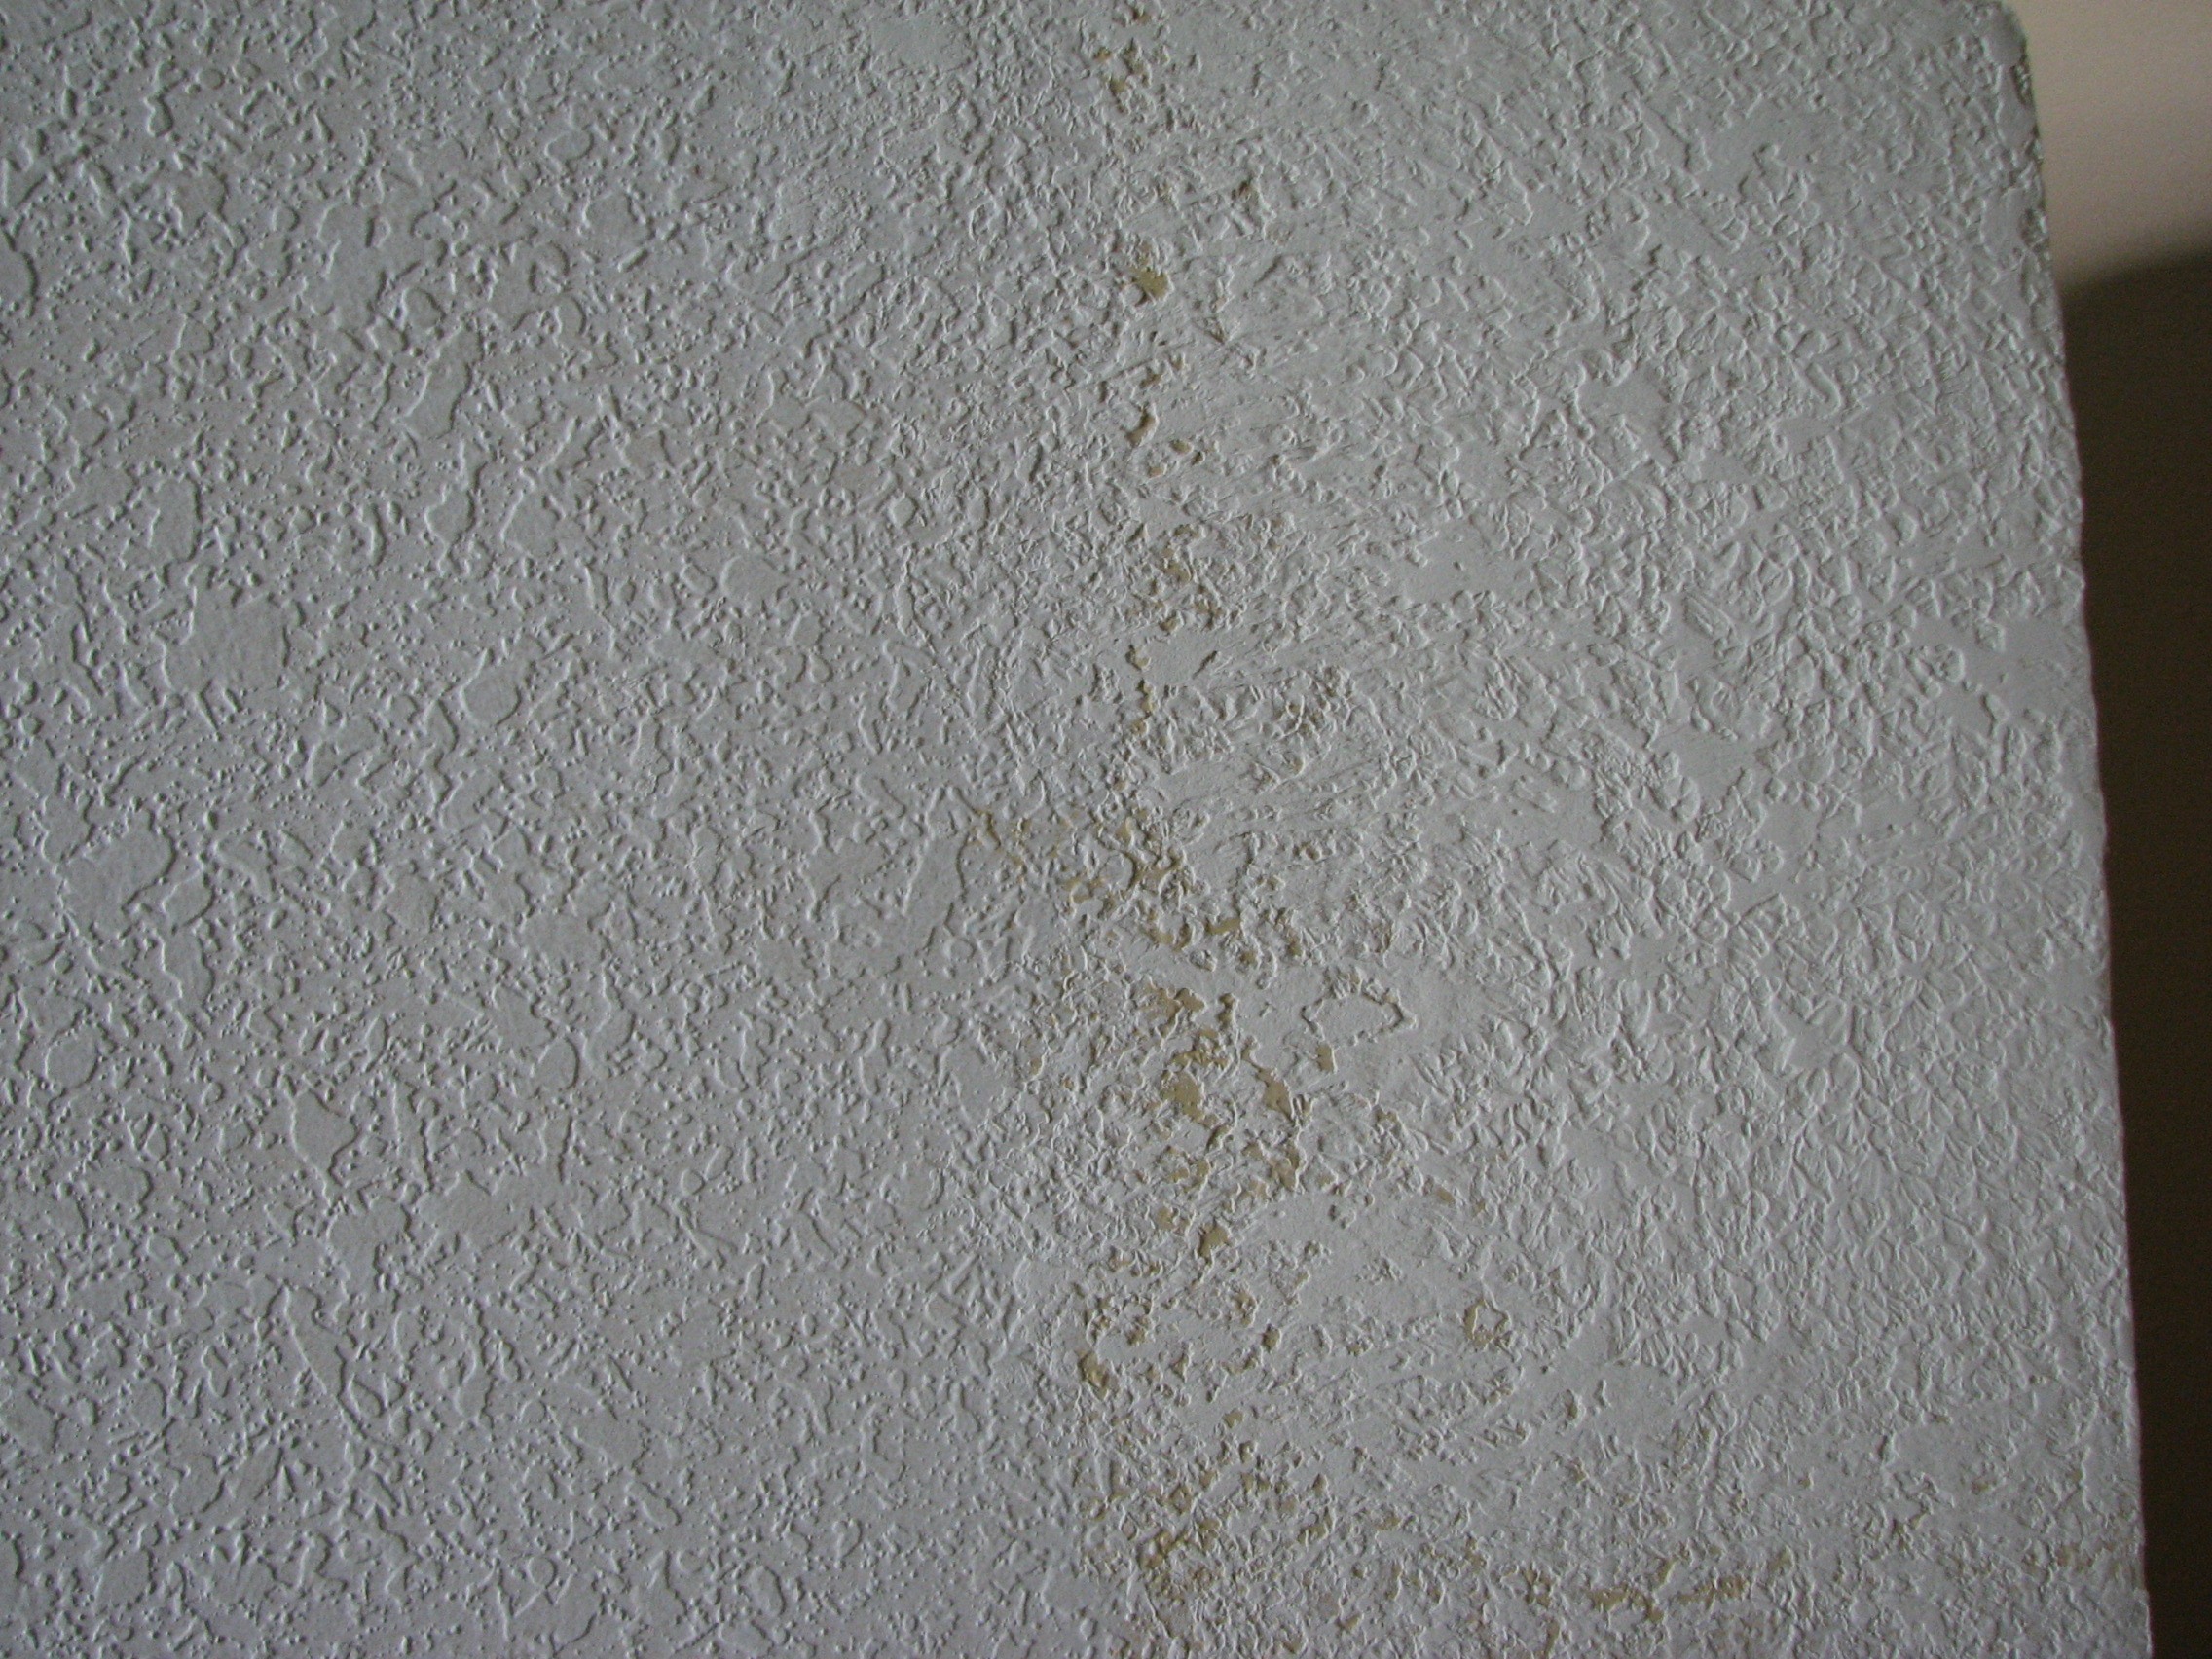 Knockdown Textured Ceiling Knockdown Texture Sponge Can Match Texture On Wall Repairs